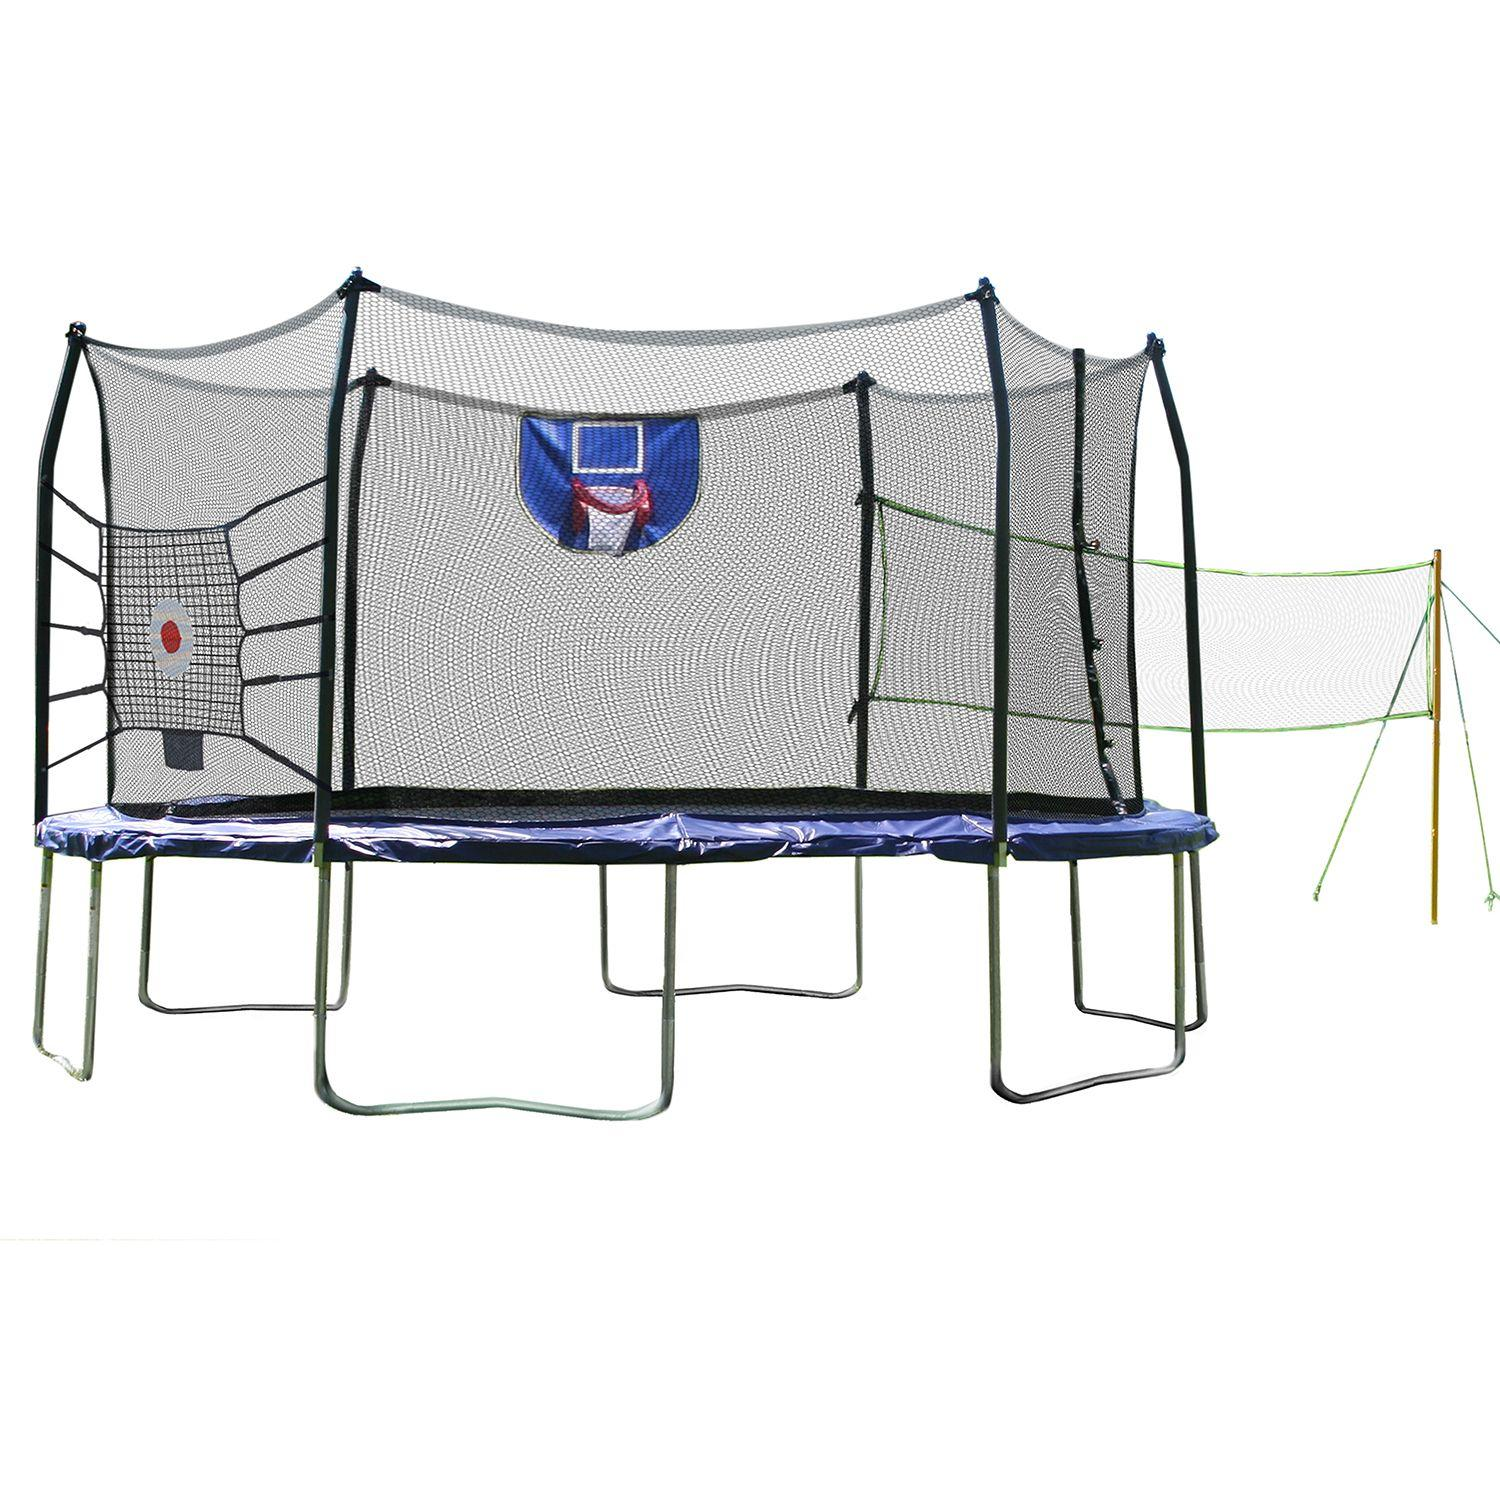 Skywalker Trampolines 15' Round Sports Arena Trampoline and Enclosure